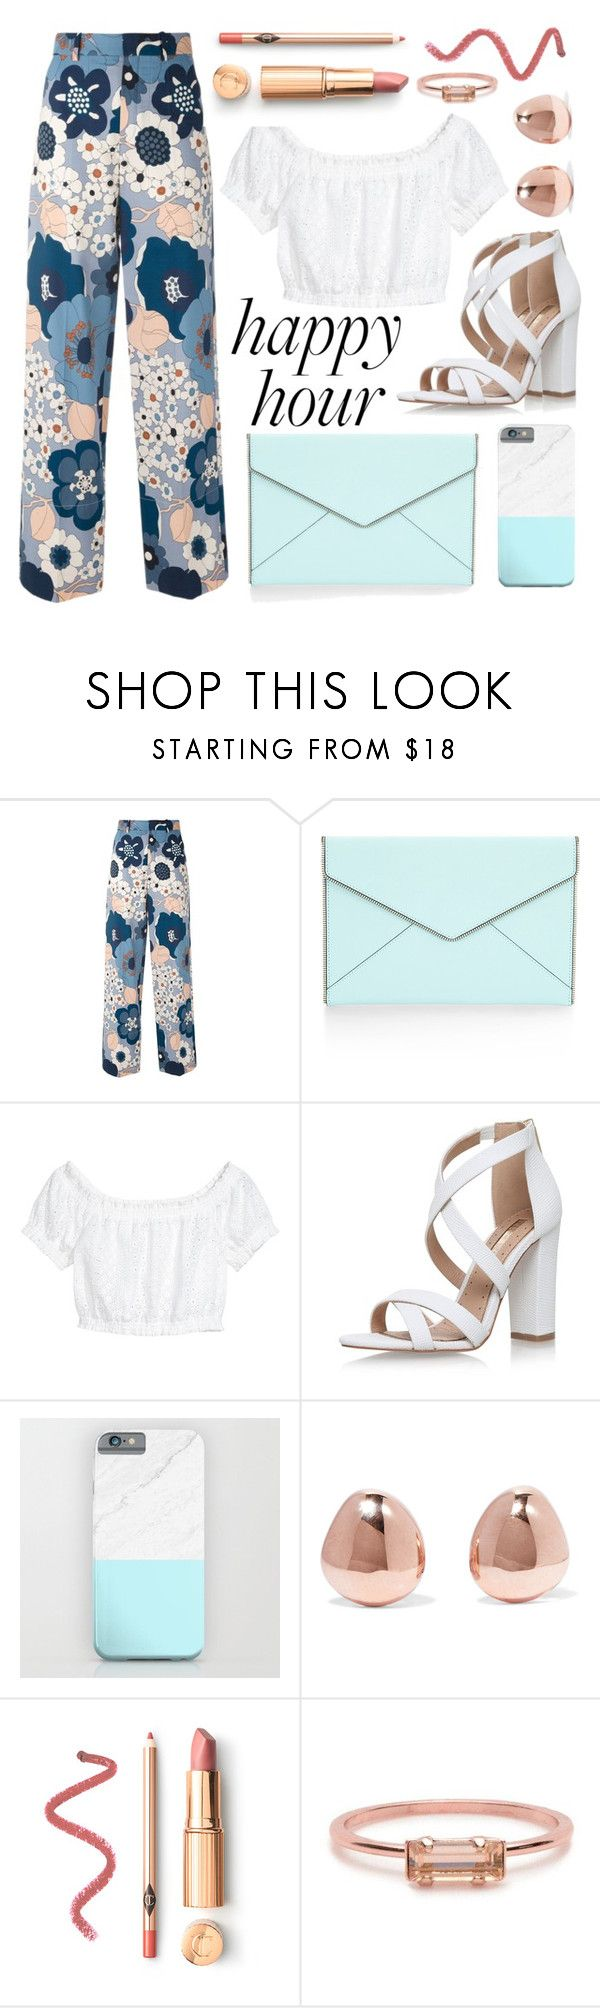 """OOTD - Happy hour"" by by-jwp ❤ liked on Polyvore featuring Chloé, Rebecca Minkoff, Miss KG, Monica Vinader and Bing Bang"